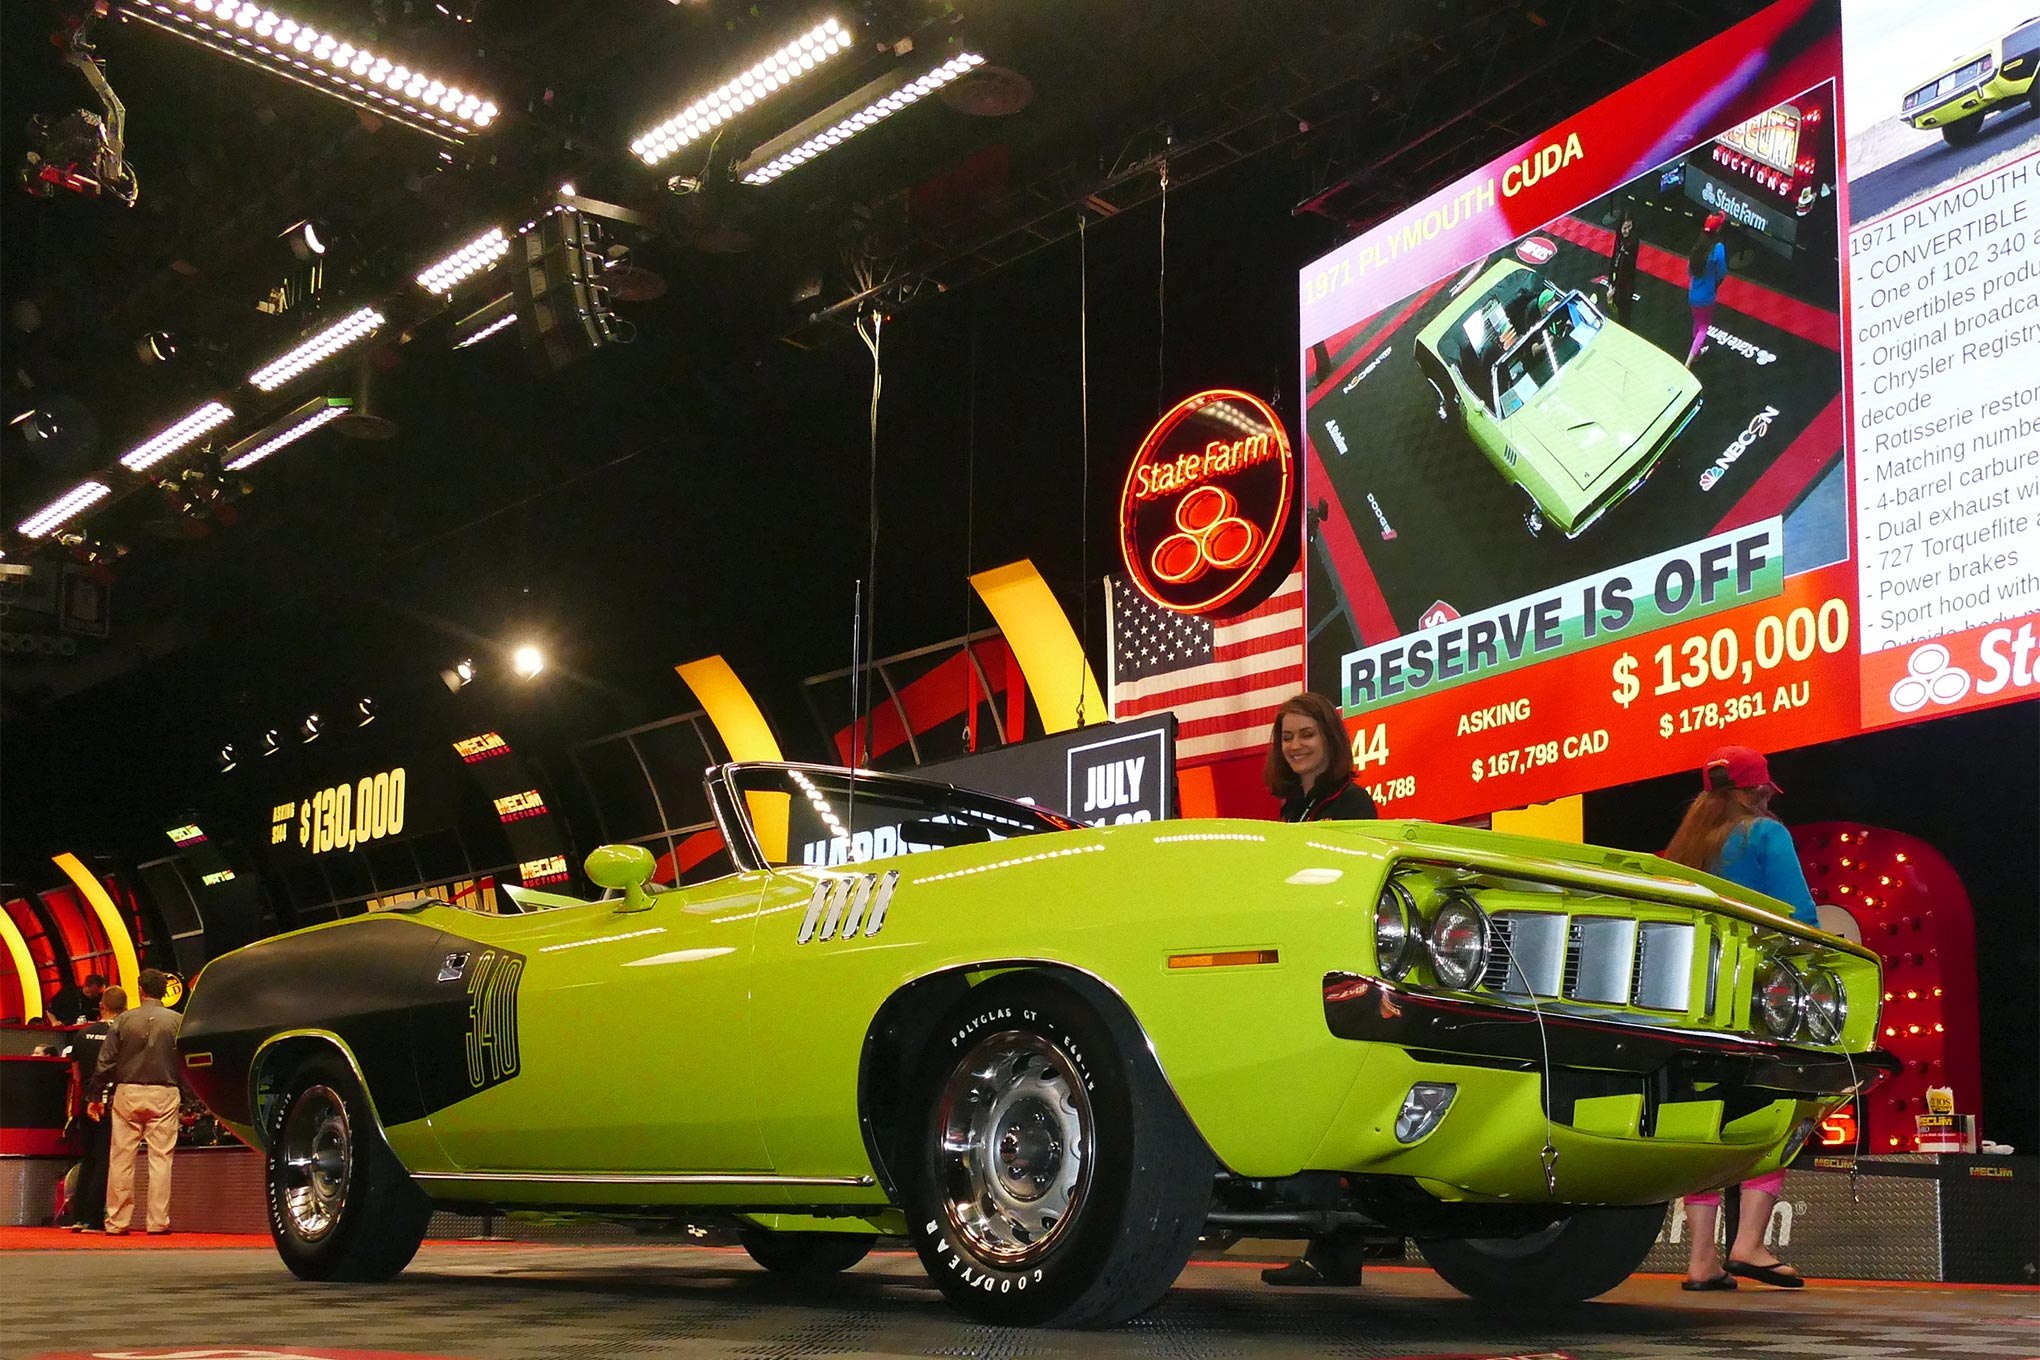 One more for tonight was the $125,000 winning bid this 340 'Cuda convertible (lot S144) generated.